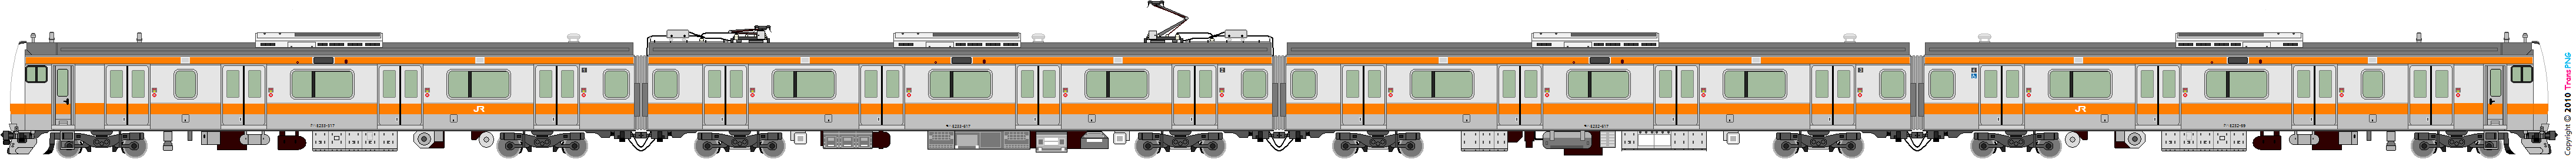 [5503] East Japan Railway 5503